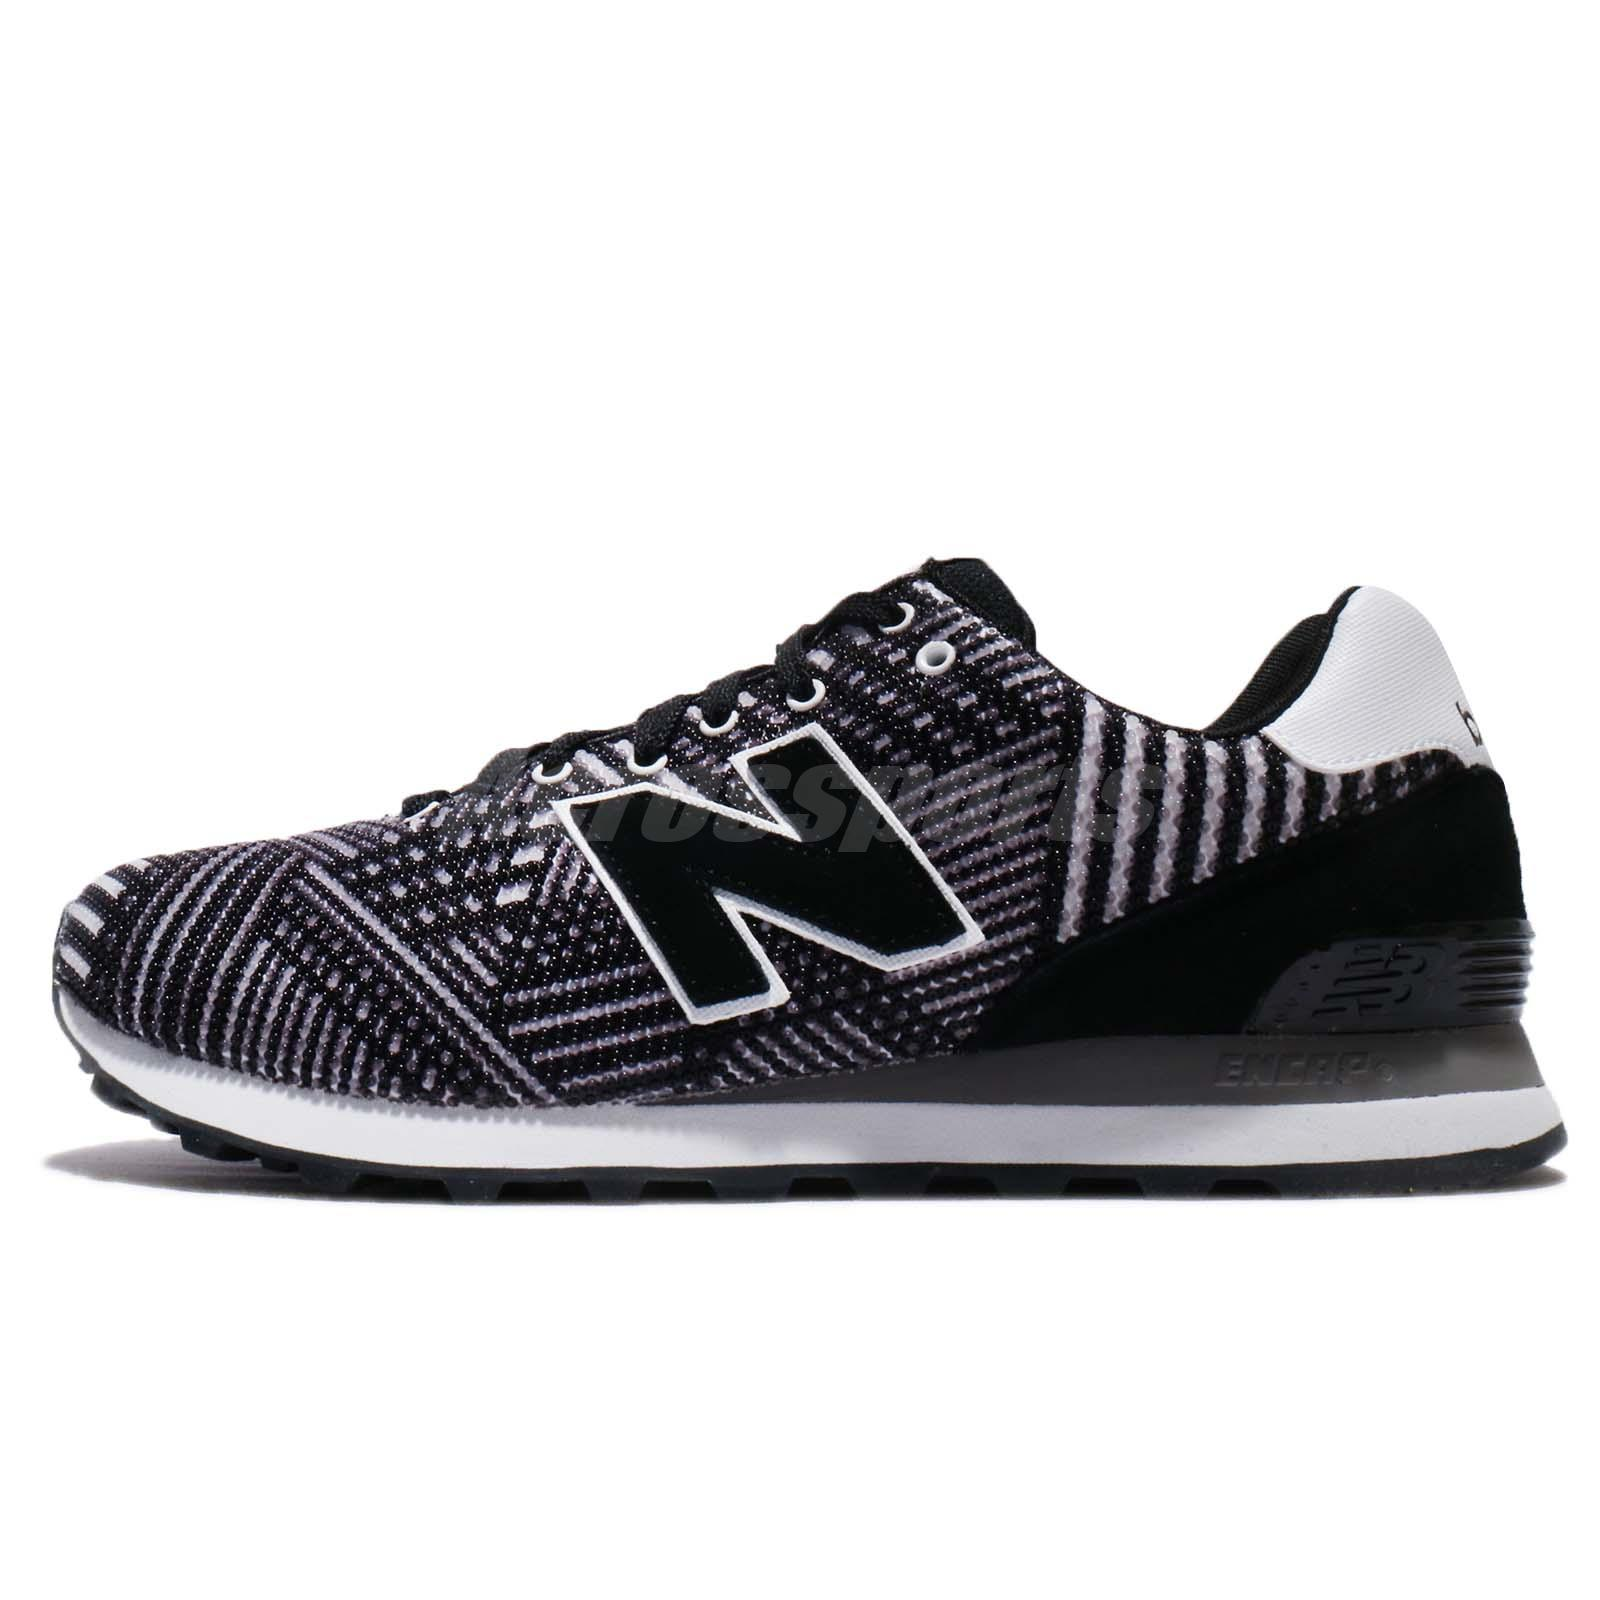 New Balance ML574TBO D 574 Black White Men Running Shoes Sneakers ML574TBOD